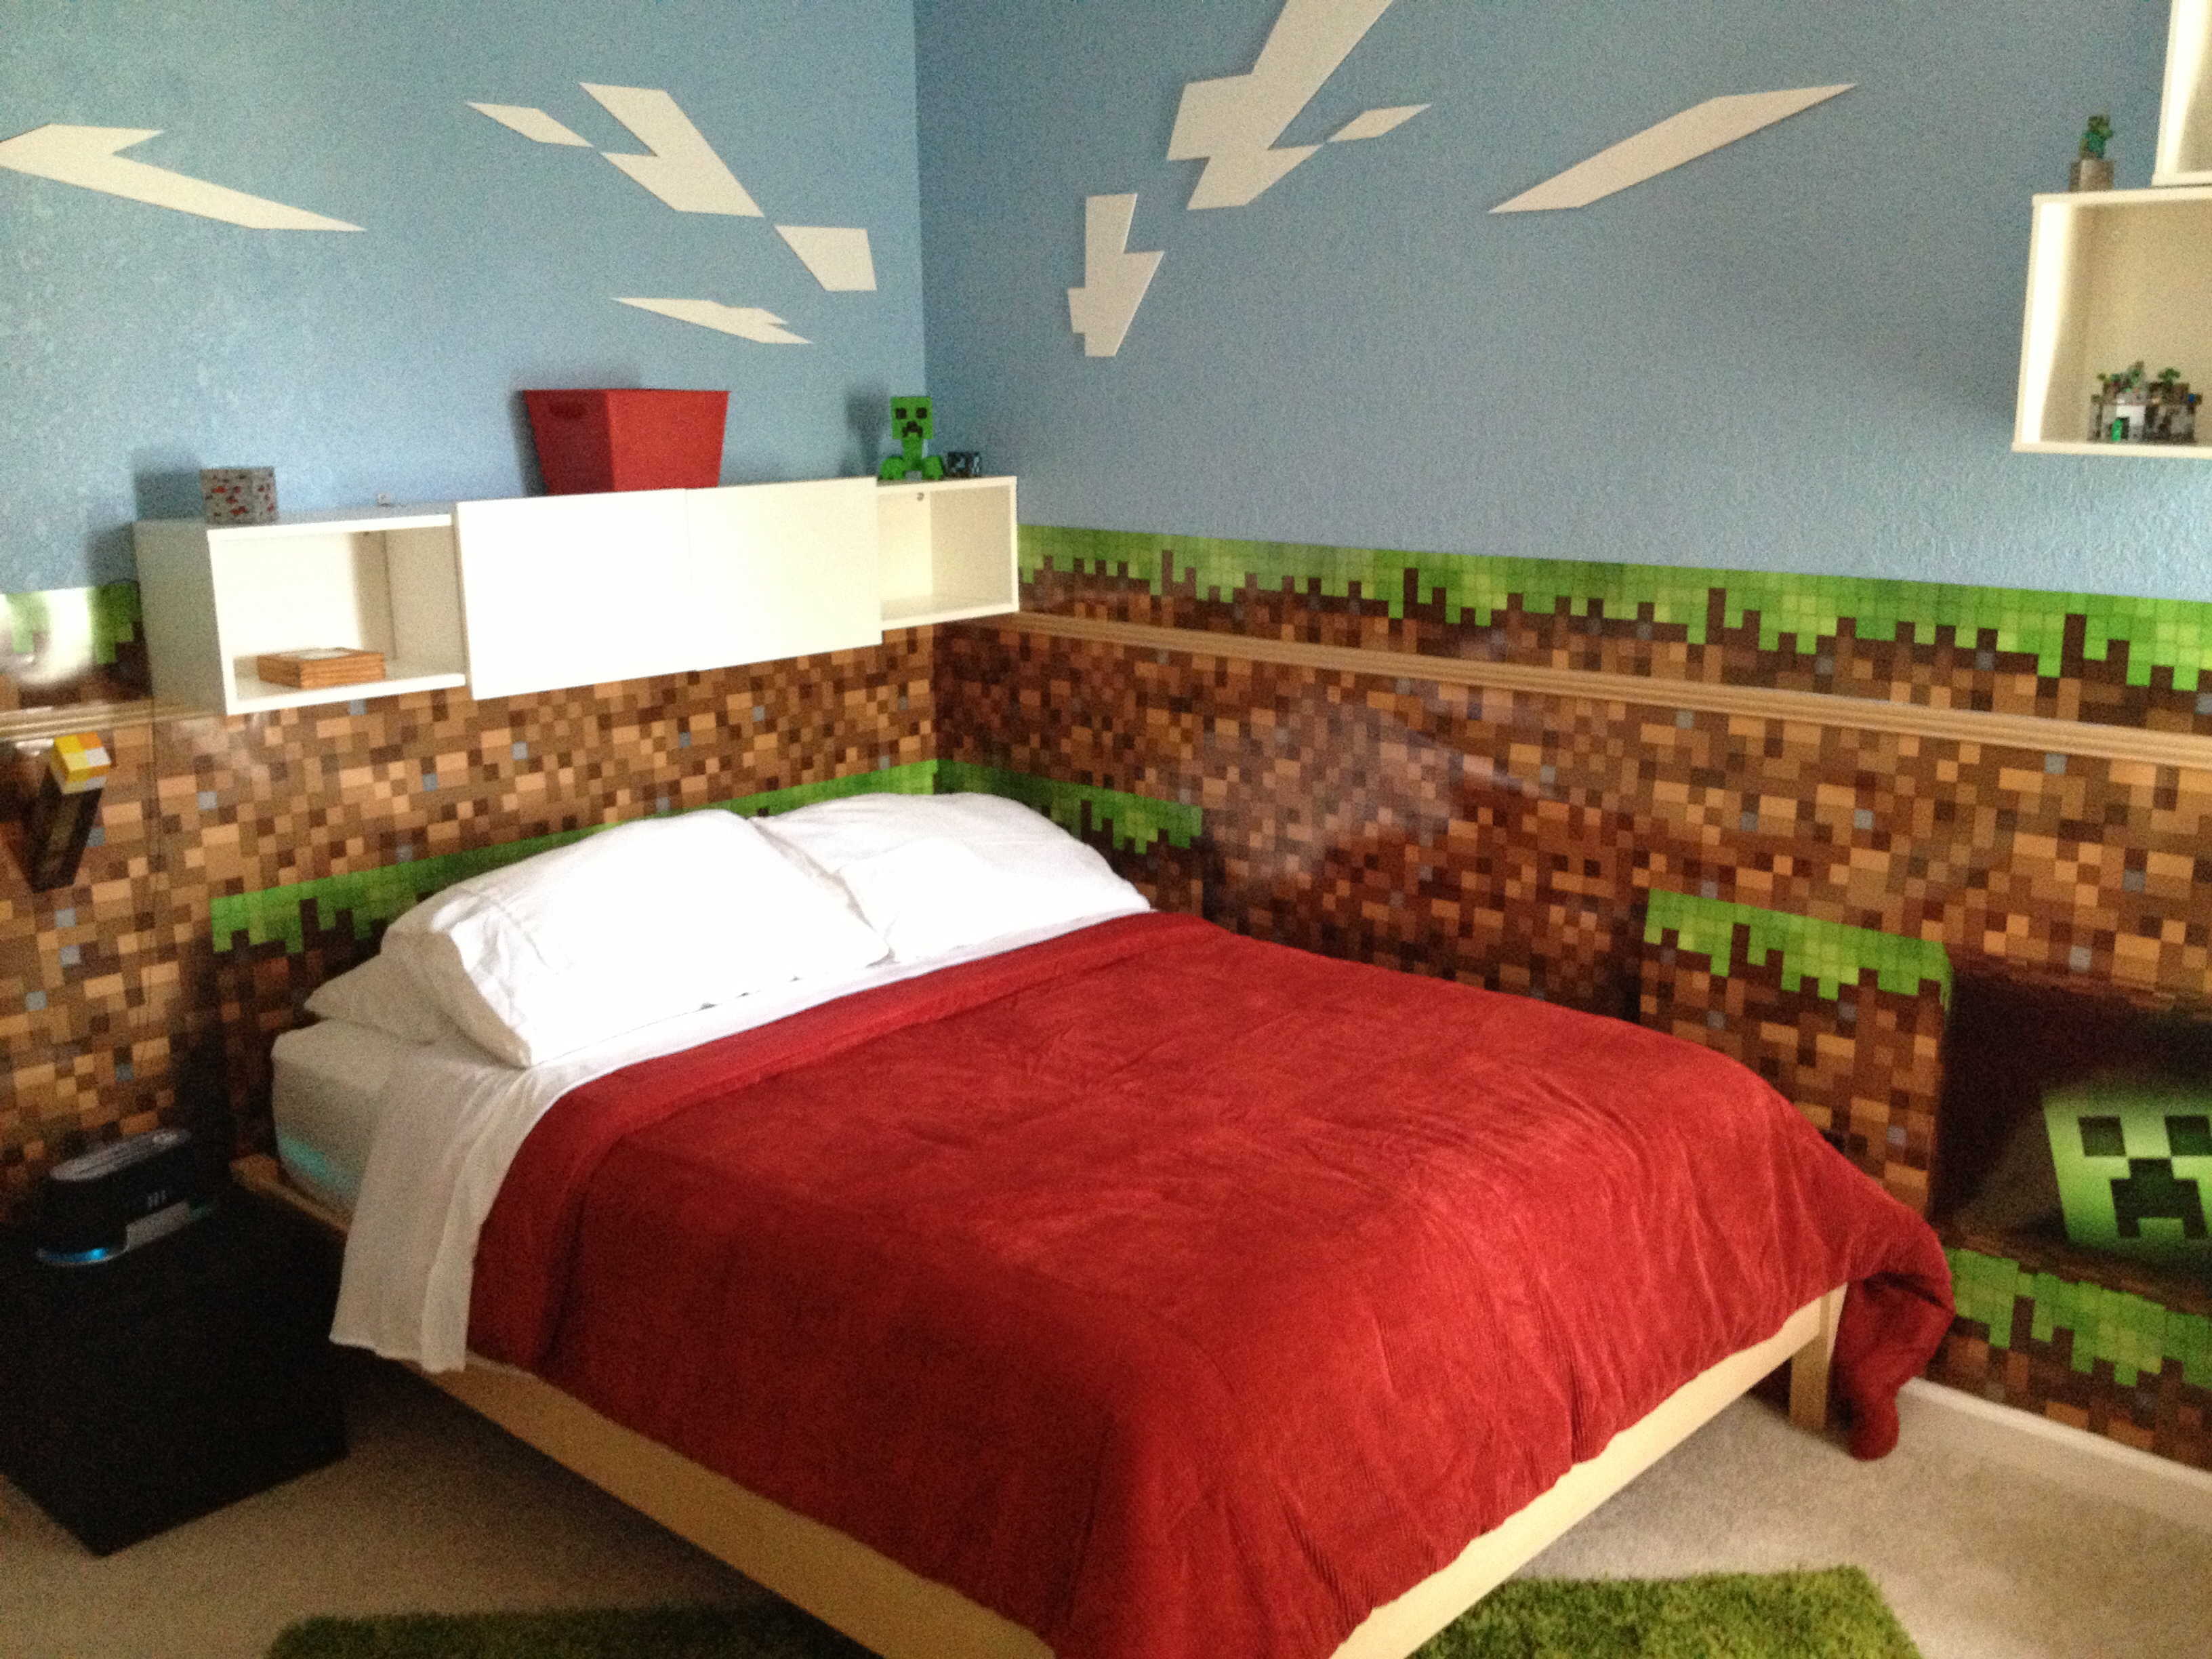 minecraft themed bedroom amazing minecraft bedroom decor ideas mind food 12402